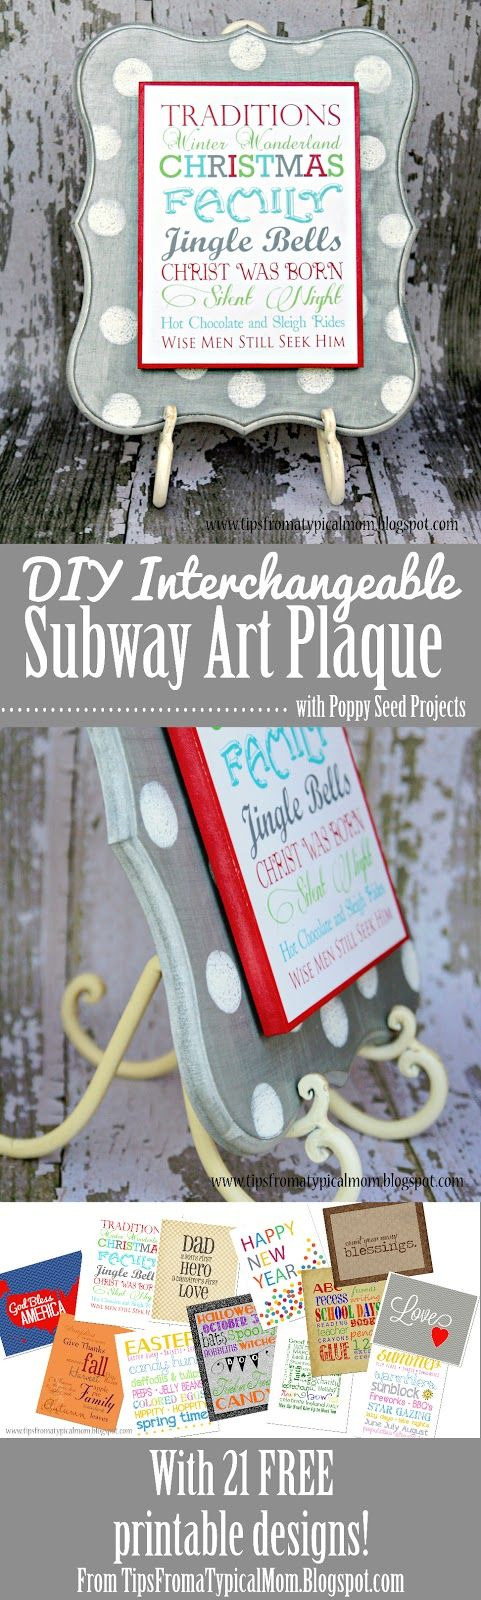 {Poppy Seed Projects} DIY Interchangeable Subway Art Plaque - Tips from a Typical Mom